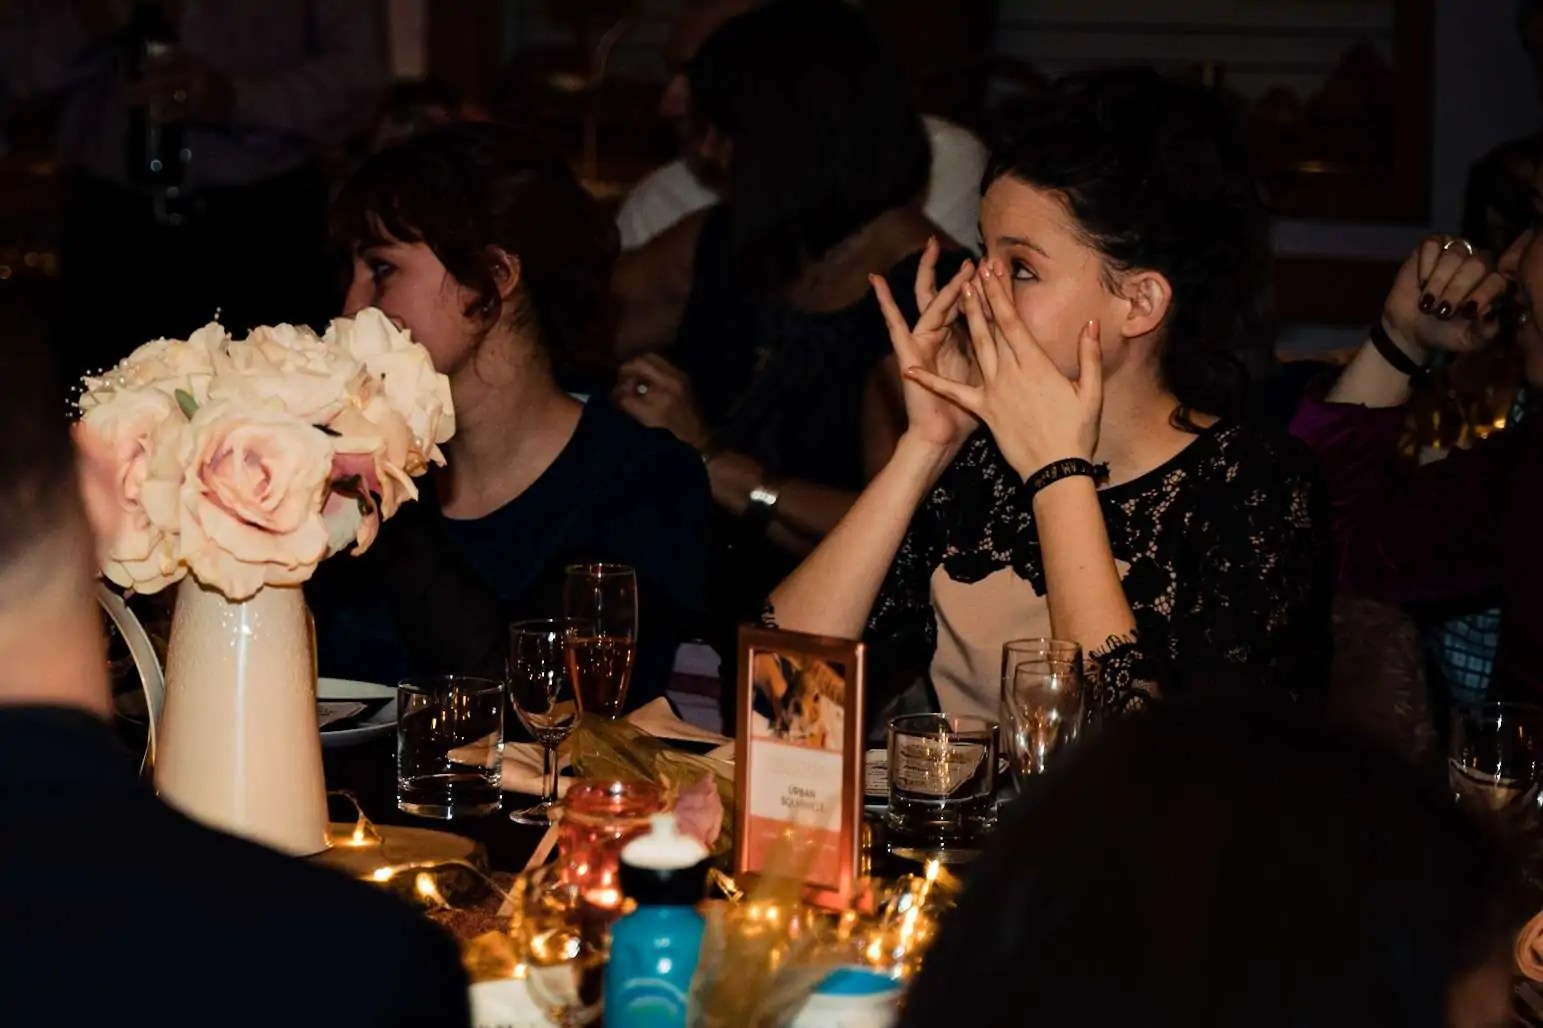 A wedding guest crying during the grooms speech